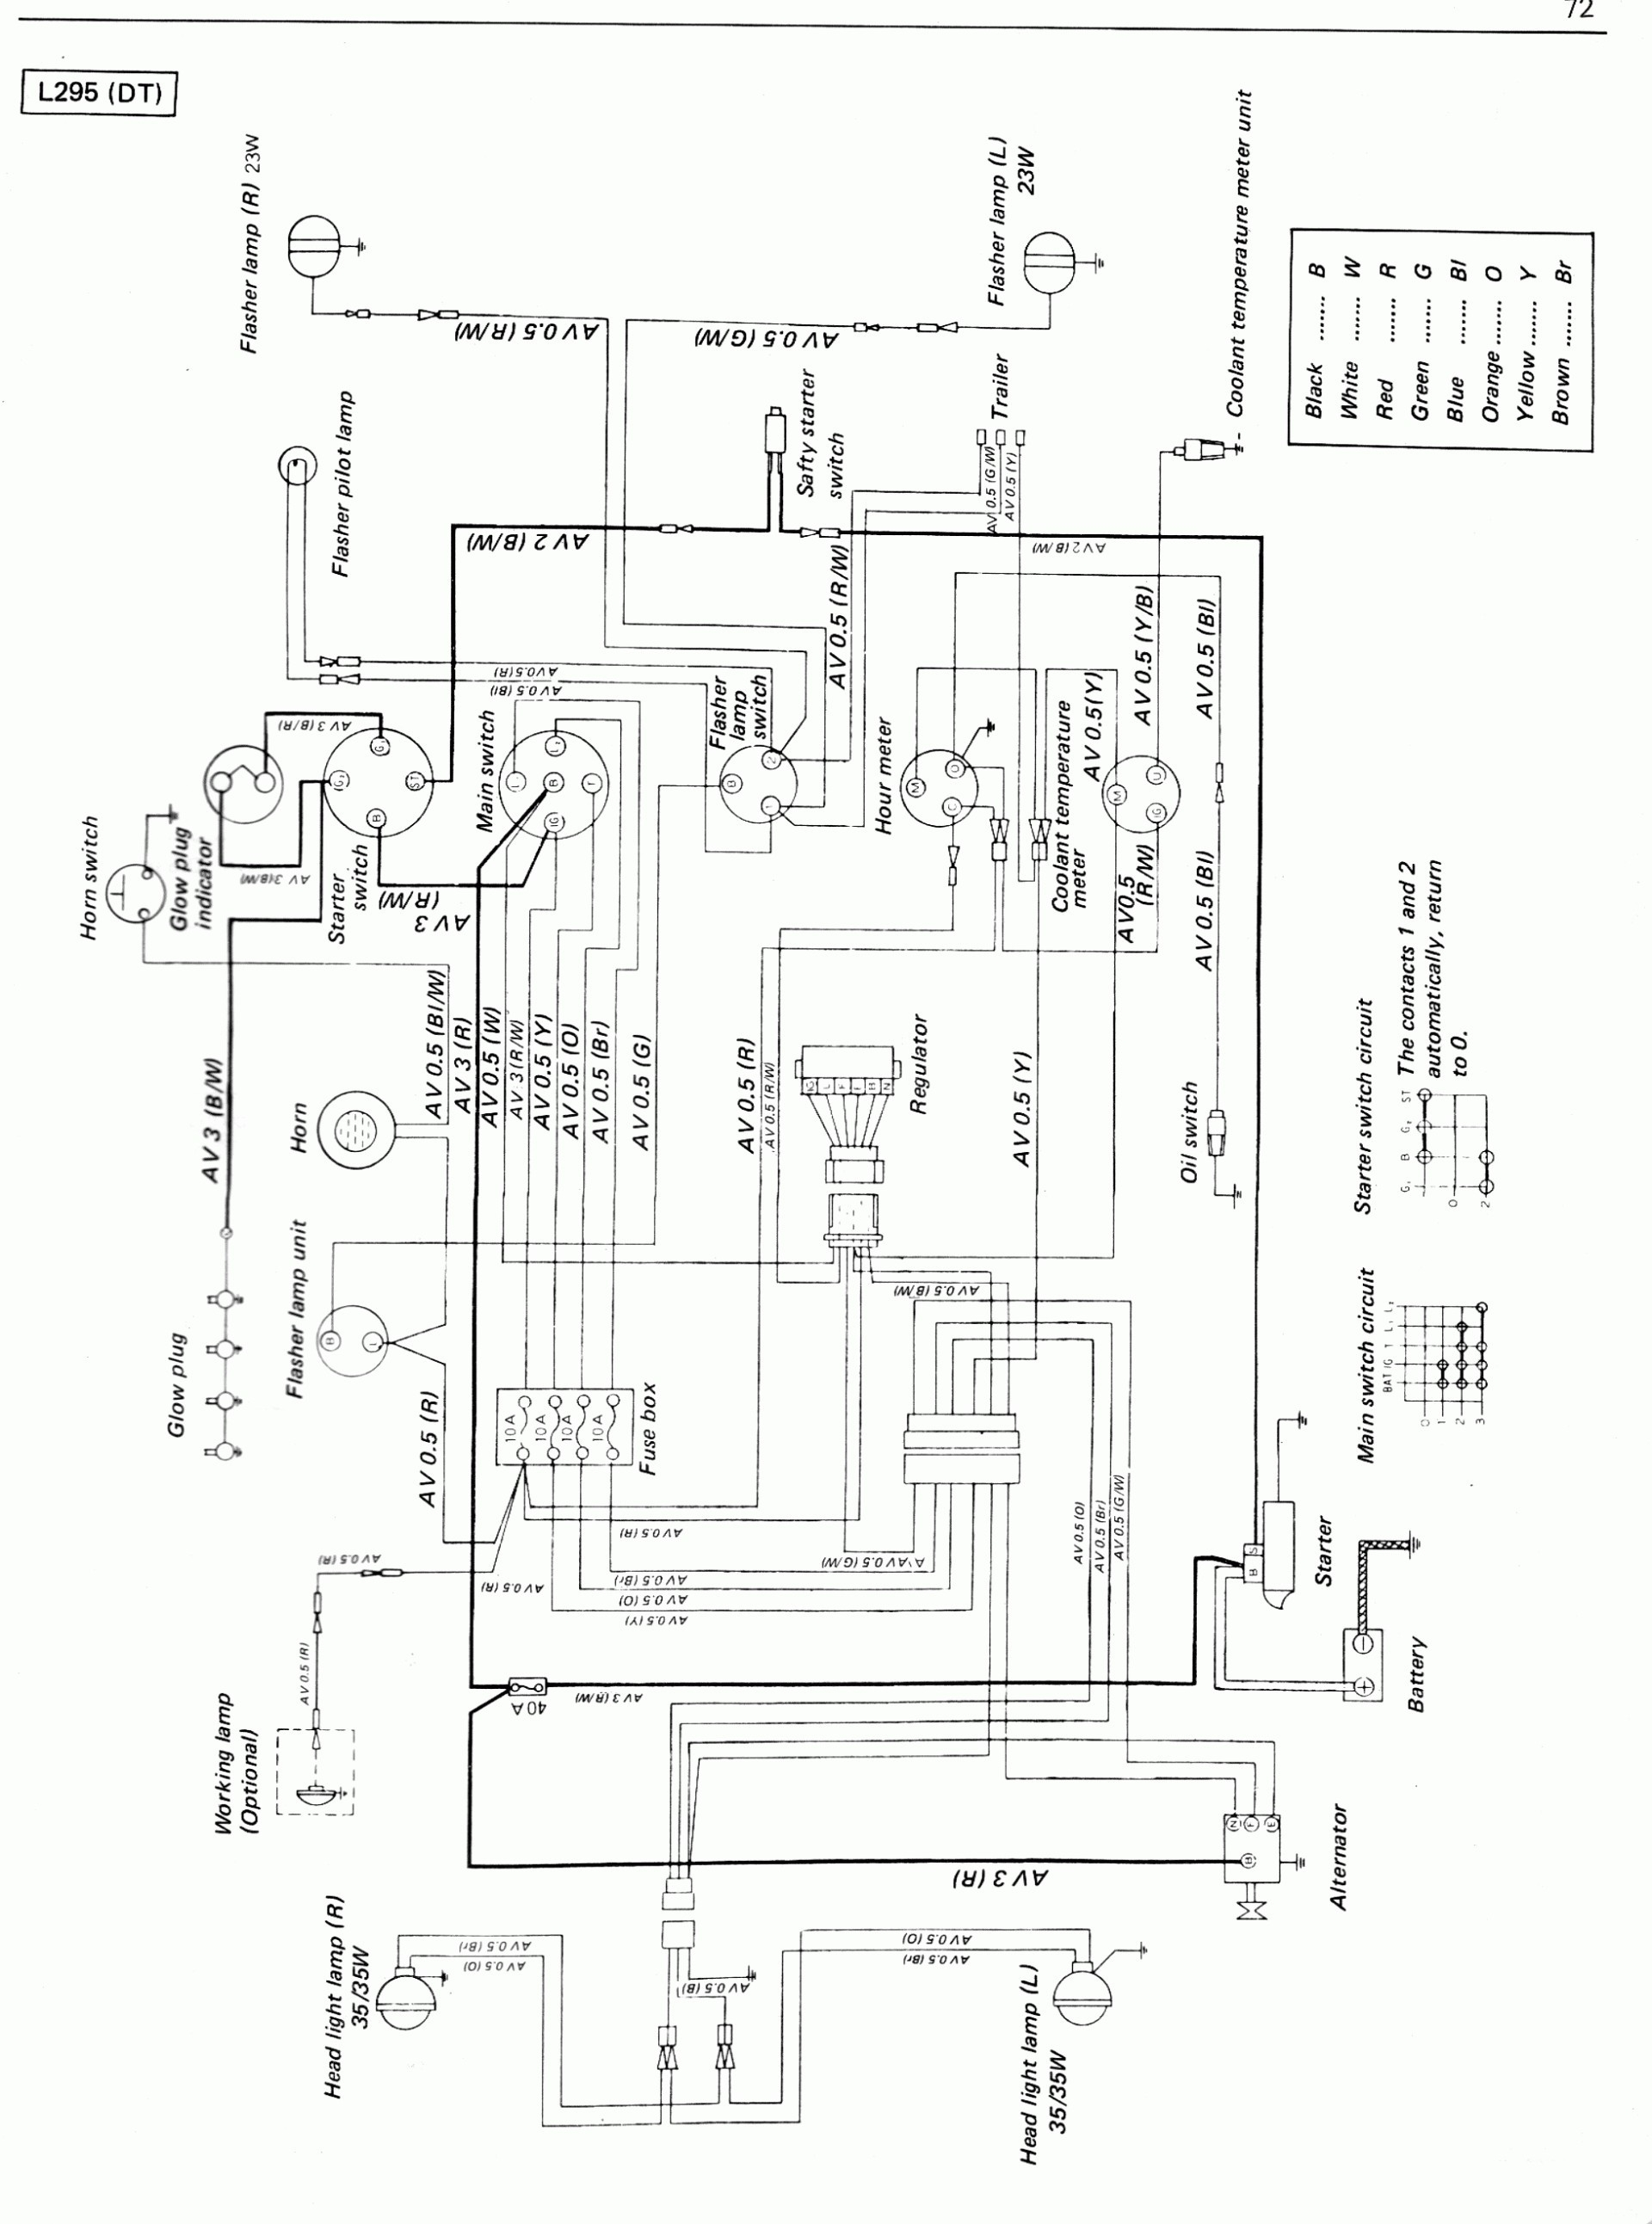 Kubota Wiring Diagram Pdf - Wiring Diagram Detailed on kubota b9200hst, kubota l2650, kubota 2650 4wd tractor with loader, kubota f2260, kubota zd221, kubota b2320dt, kubota b1700 parts diagram, kubota compact tractor 4x4, kubota b2400, kubota b26, kubota bx1830, kubota loader dolly, kubota farm tractors, kubota b2710, kubota l3301 review, kubota b21, kubota b2920, kubota b7500, kubota b7200hst,